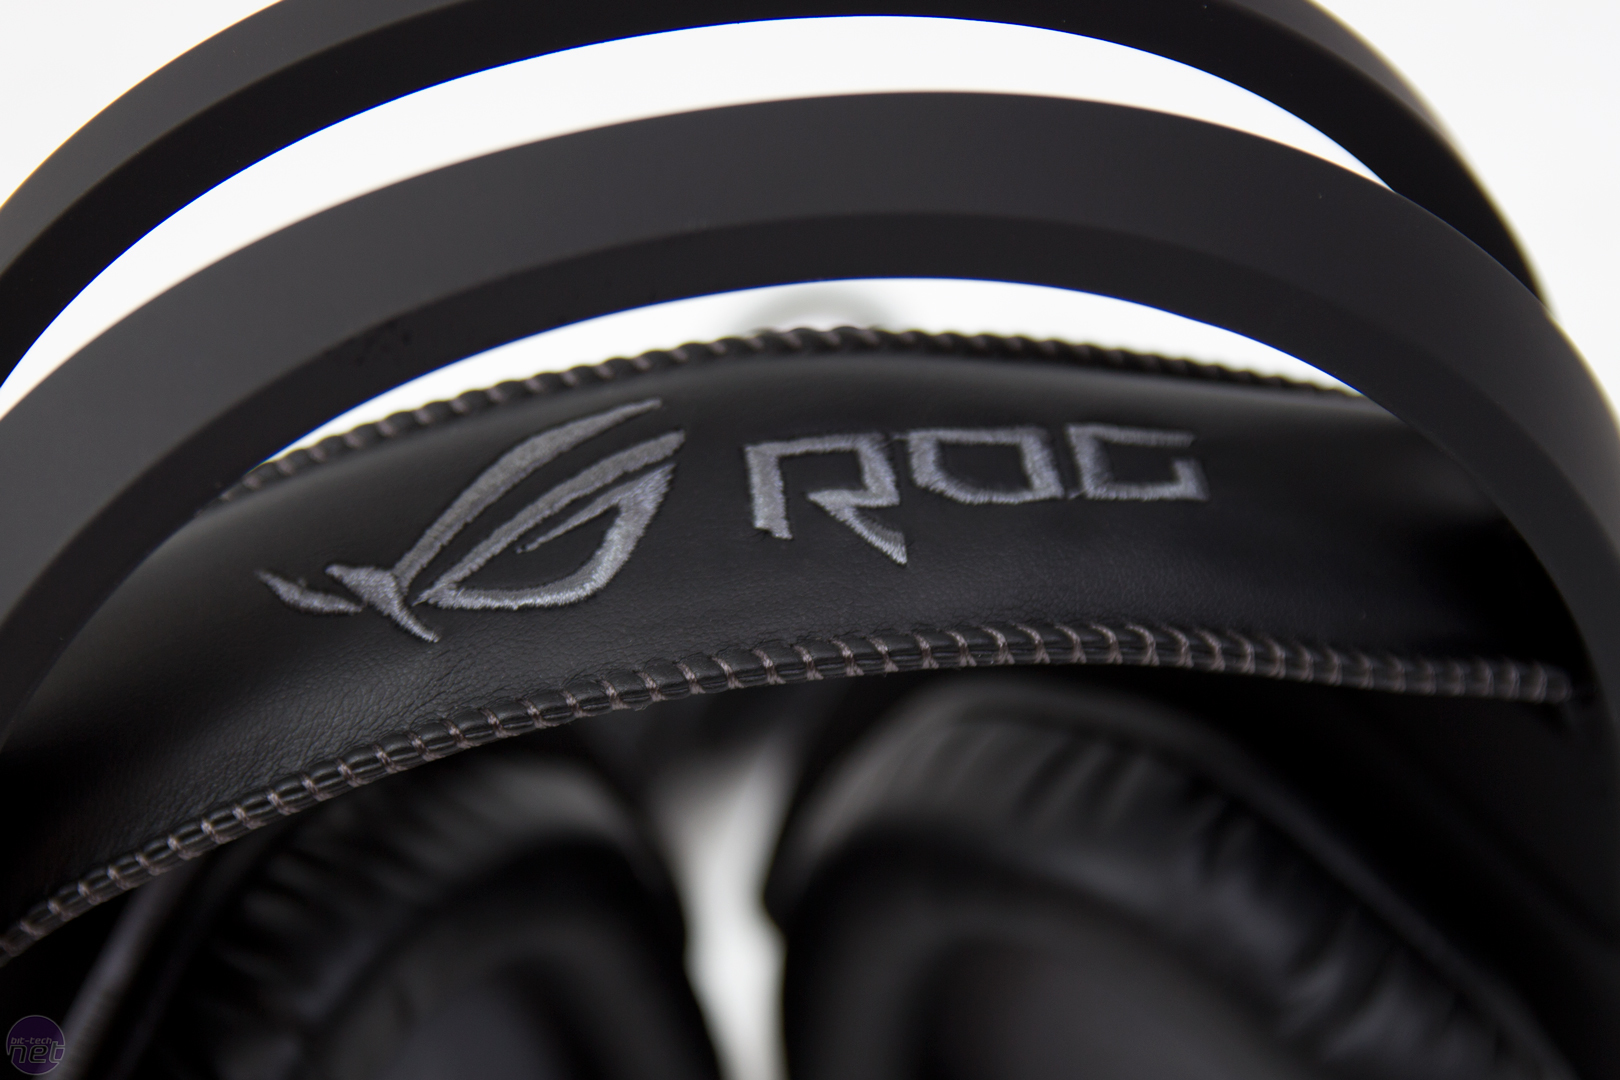 Asus Rog Centurion 71 Headset Review Click The Picture To Enlarge